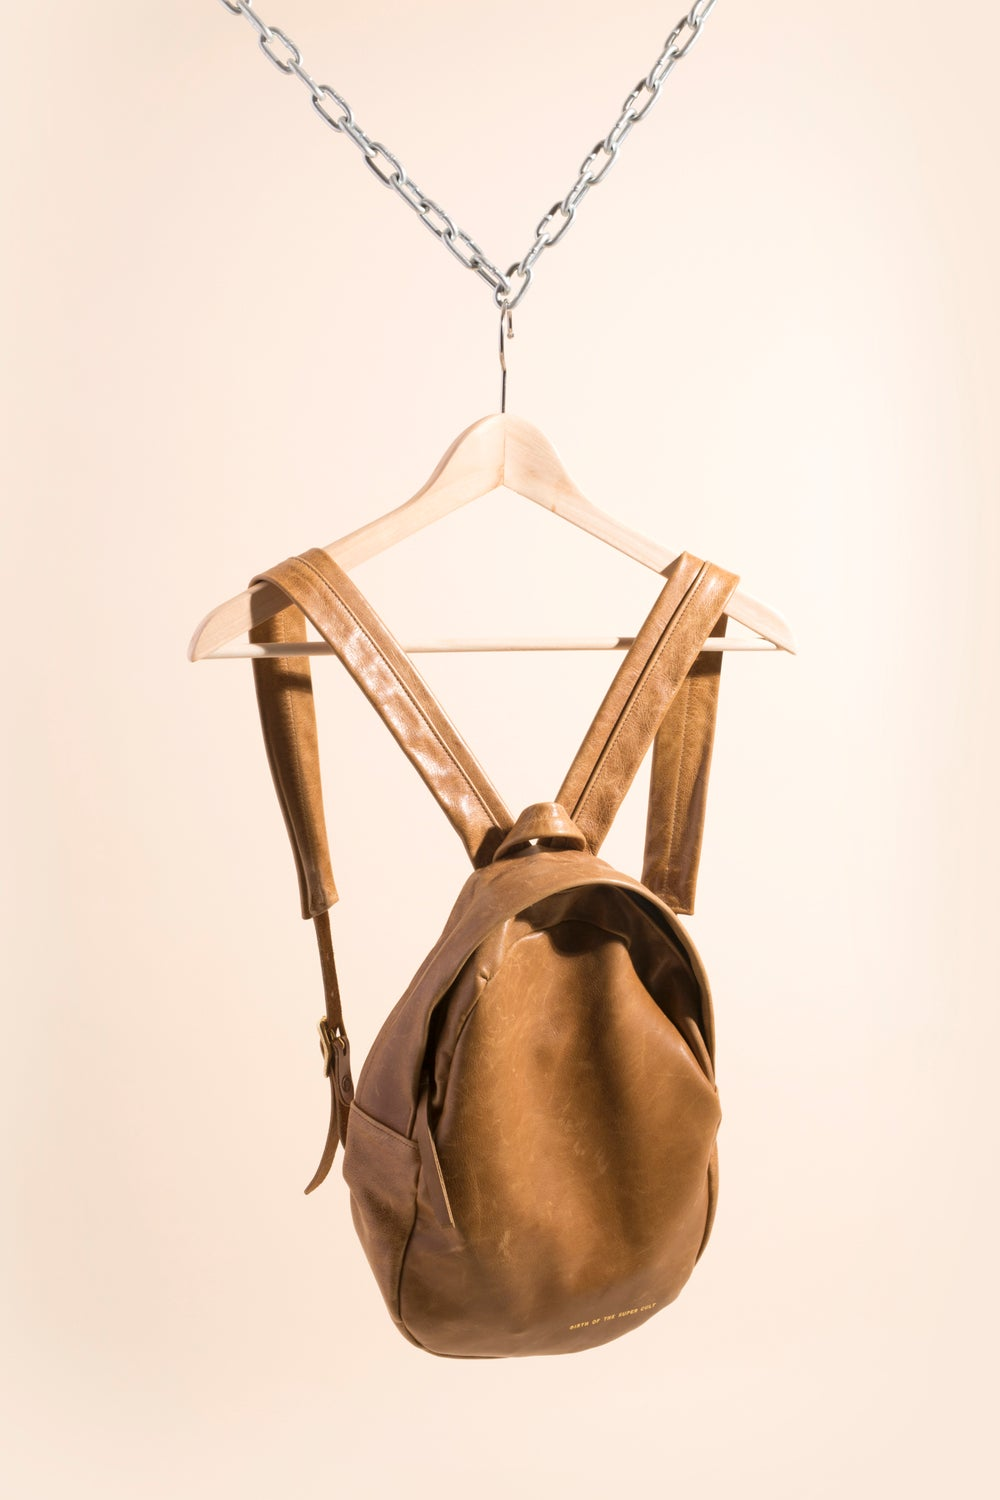 Image of Mini Backpack - Brown Leather